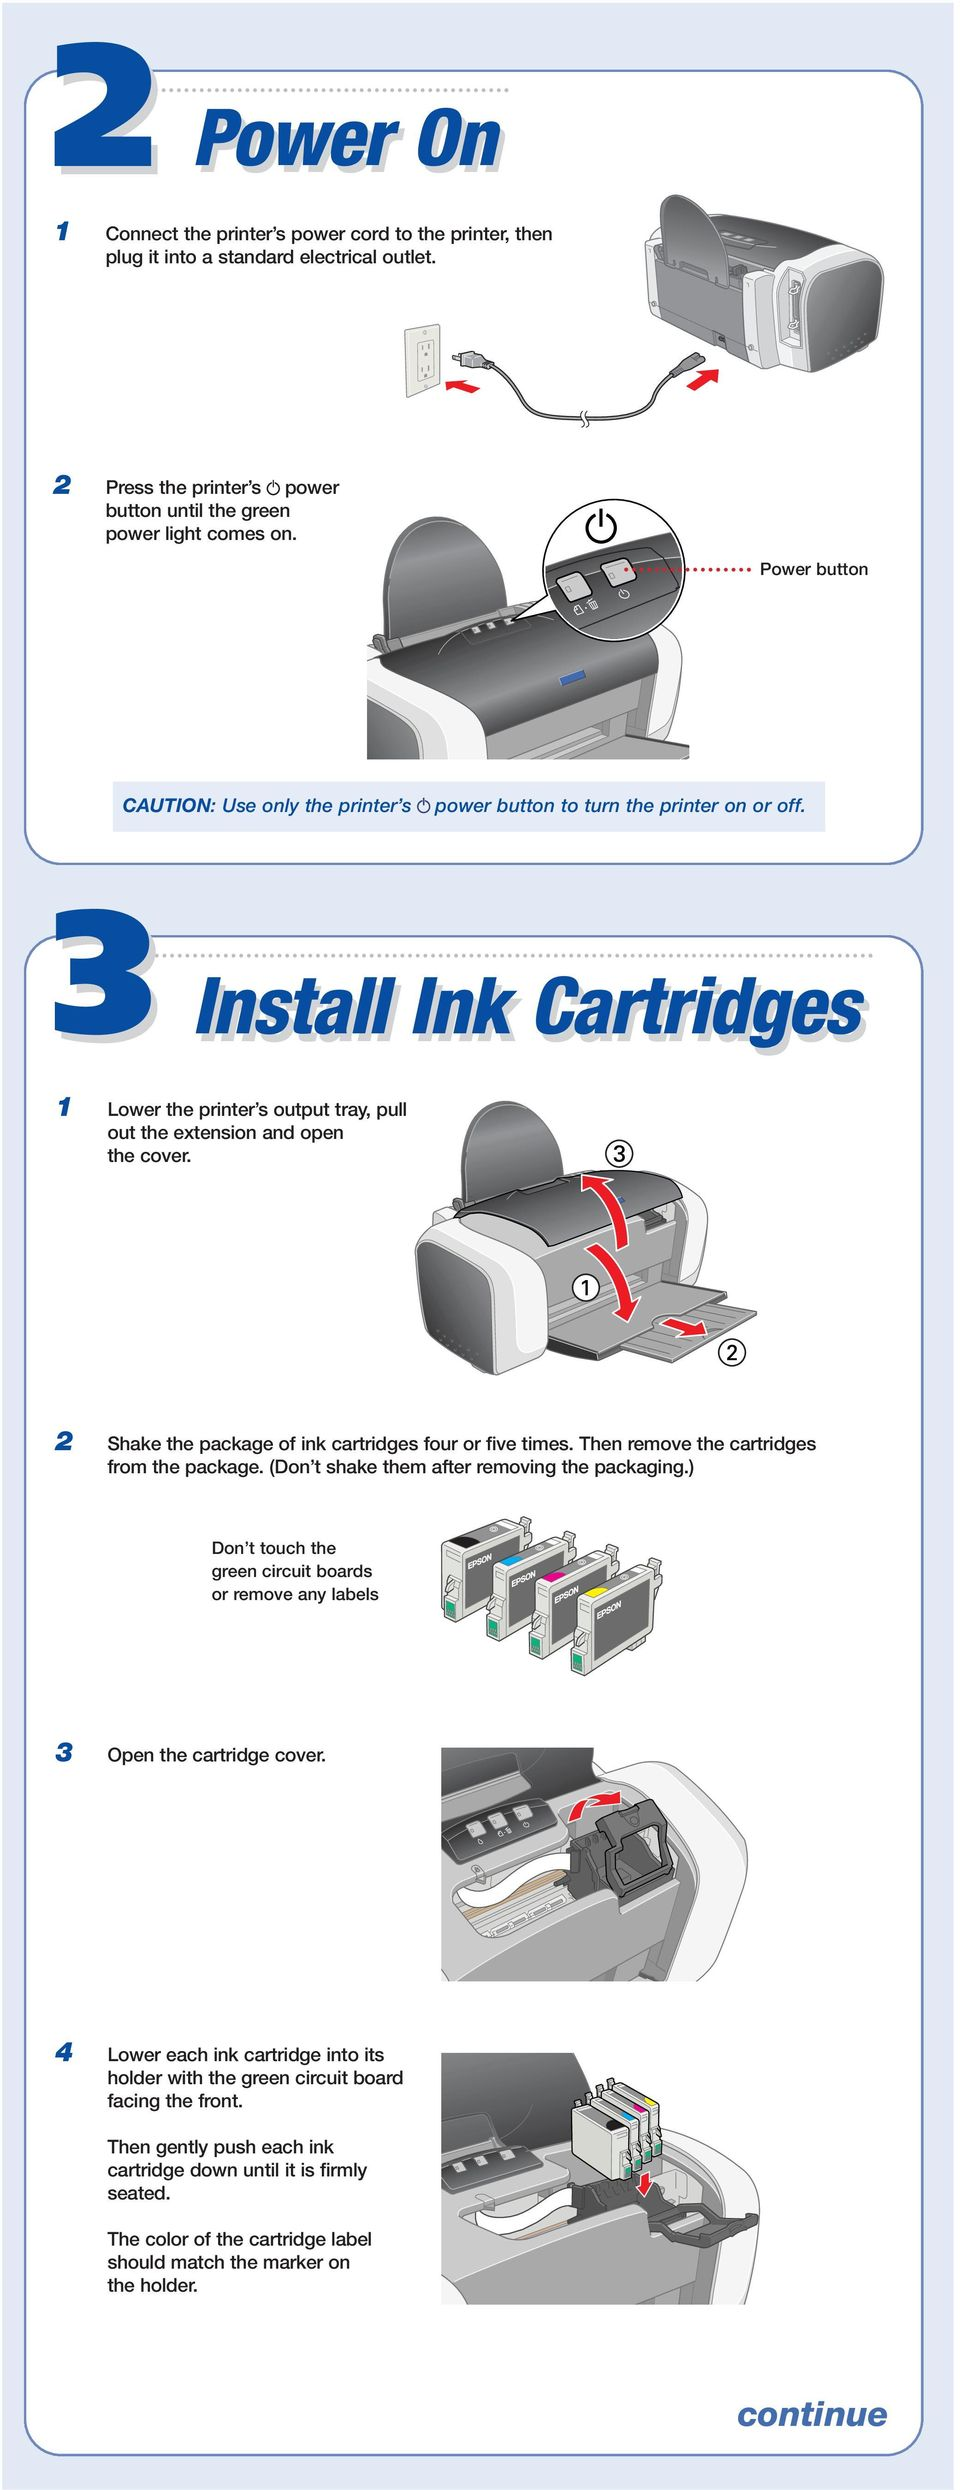 2 Shake the package of ink cartridges four or five times. Then remove the cartridges from the package. (Don t shake them after removing the packaging.